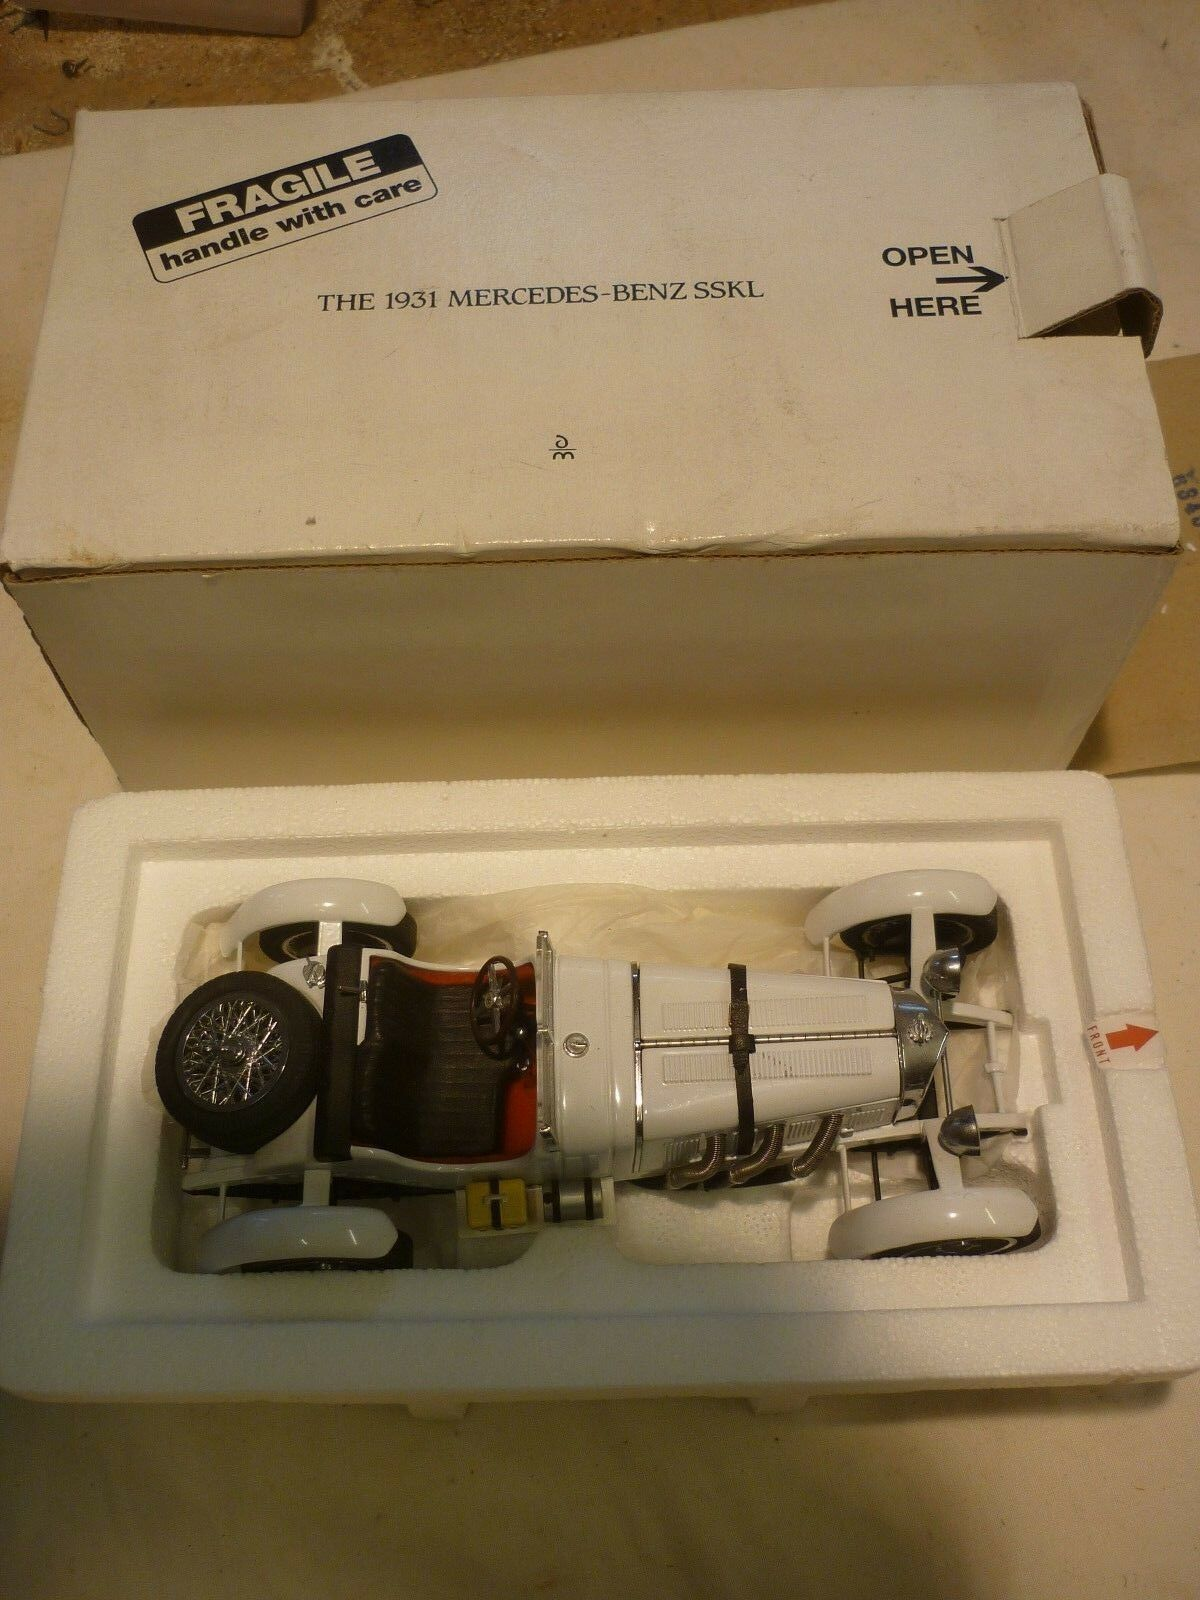 A Danbury mint scale model of a 1931 Mercedes Benz SSKL.  boxed